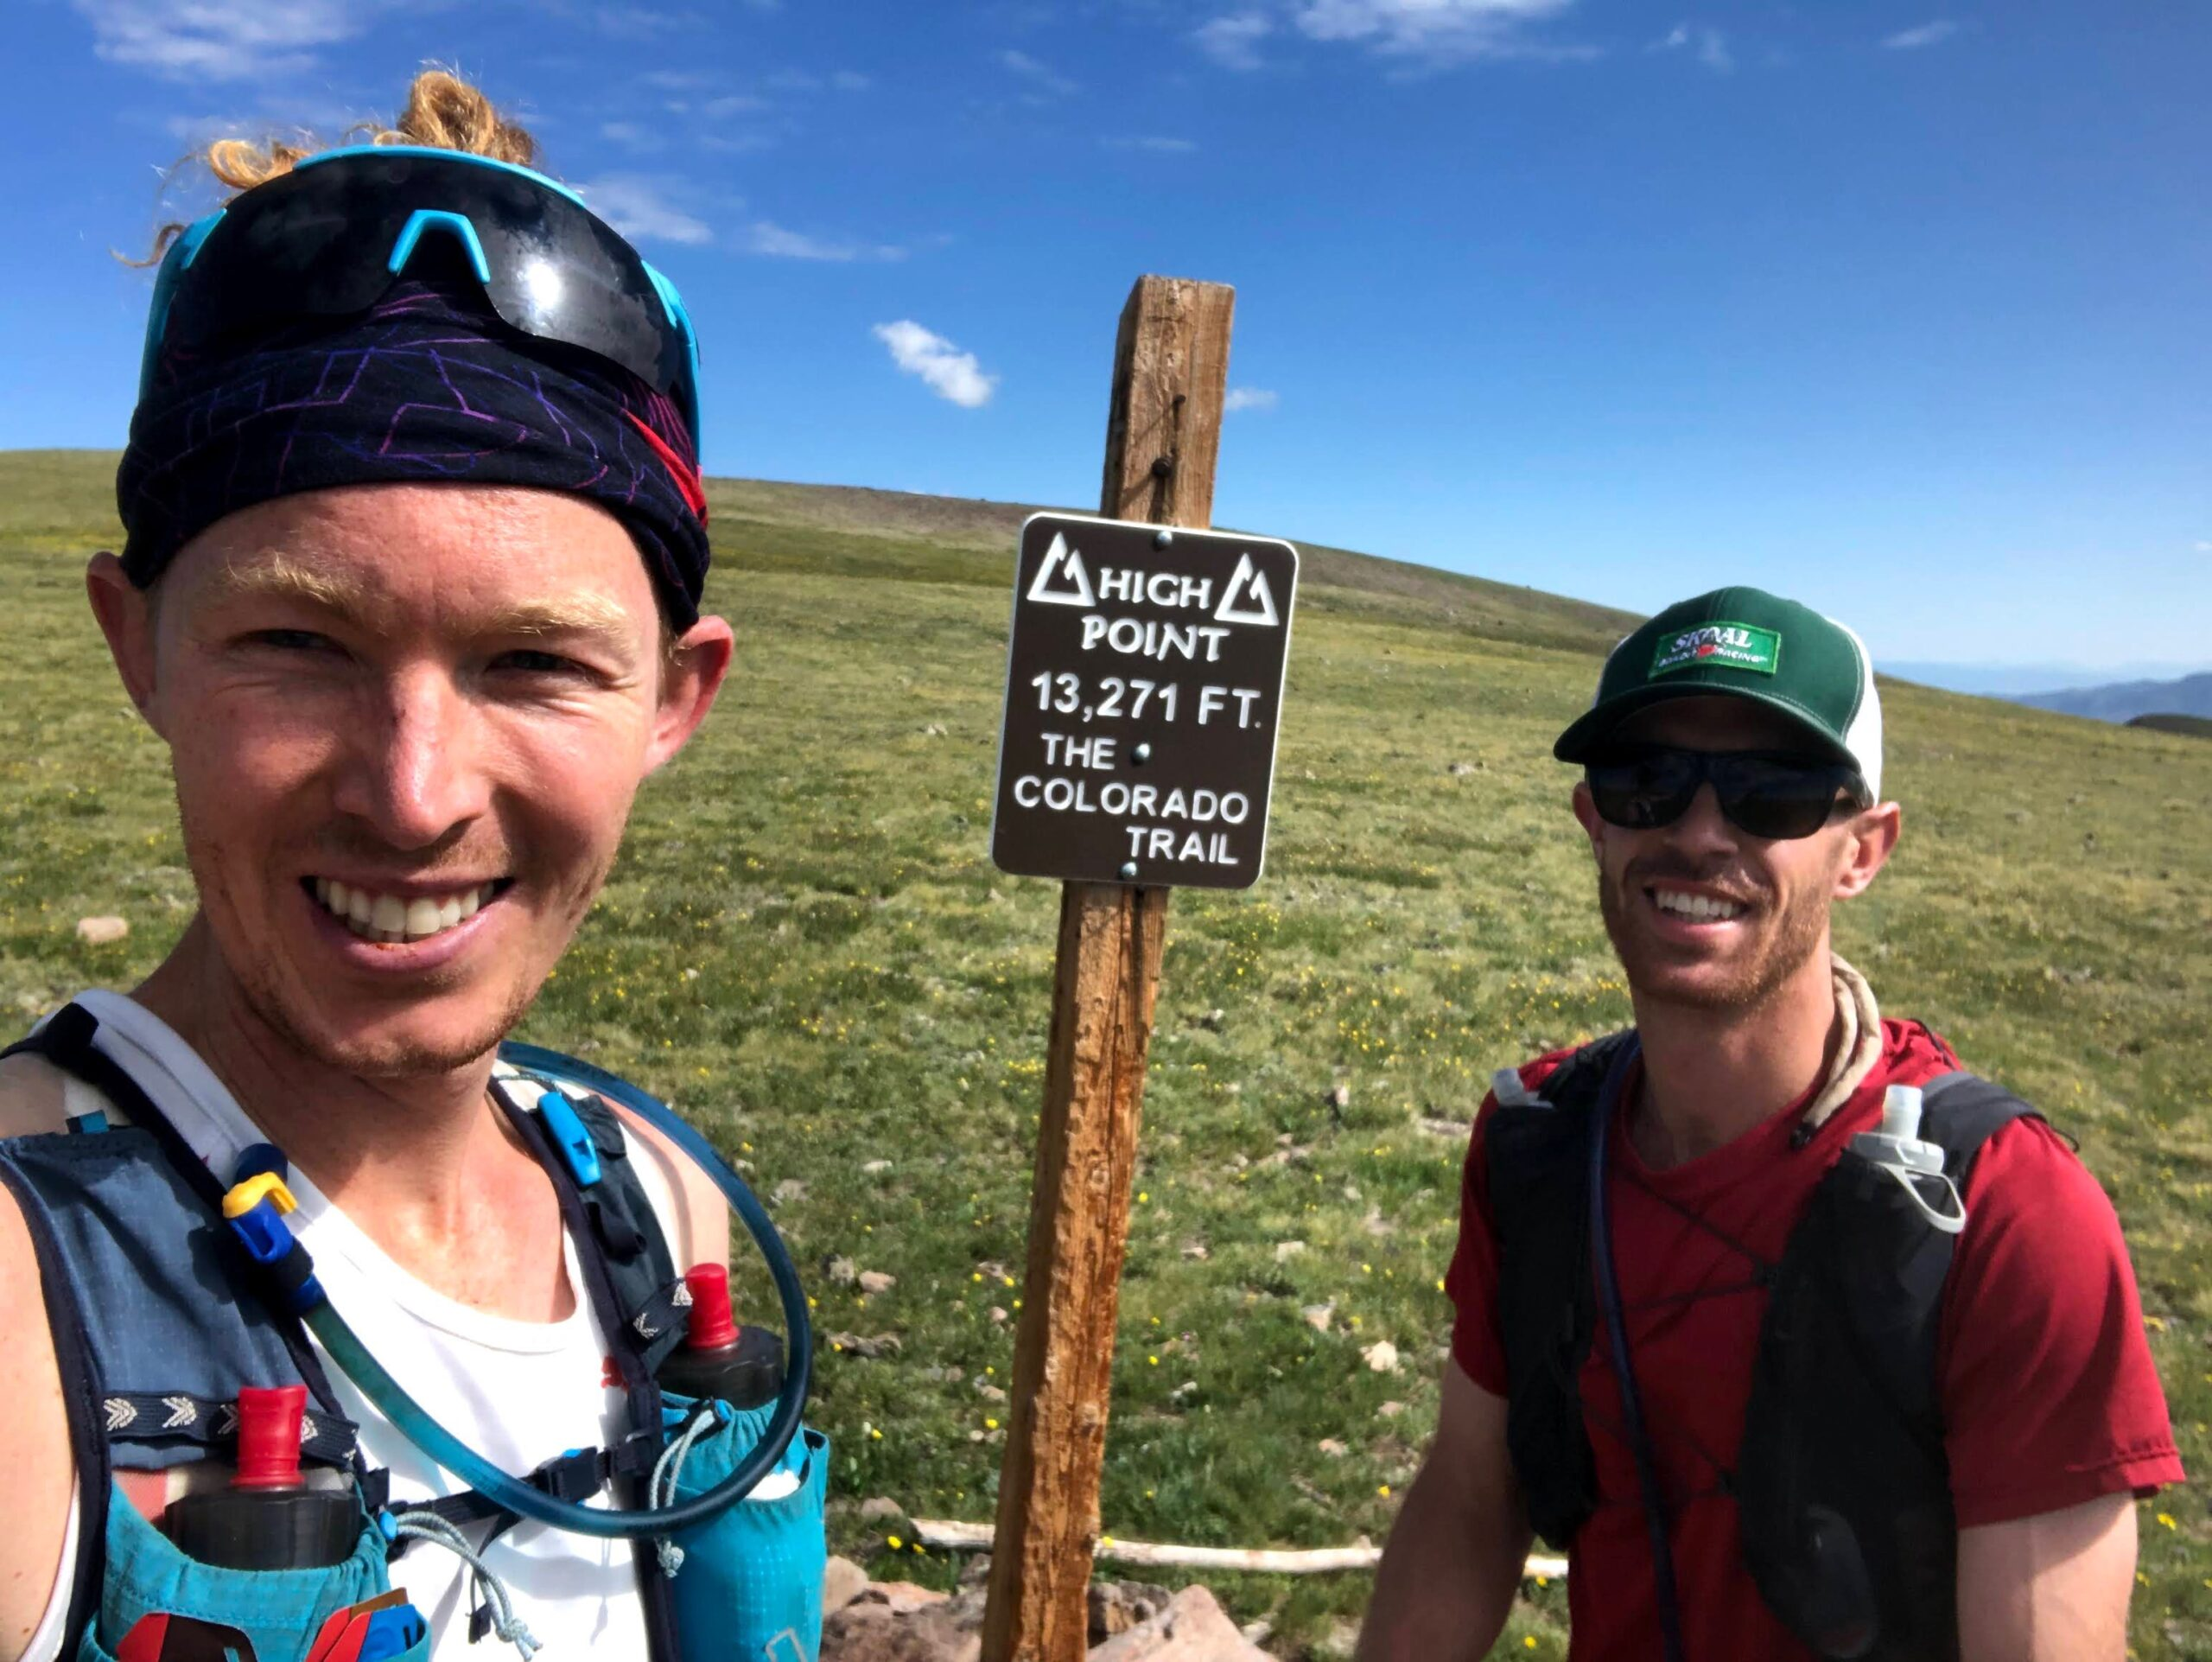 Runners Roost Employee Fundraising for Make-A-Wish Colorado